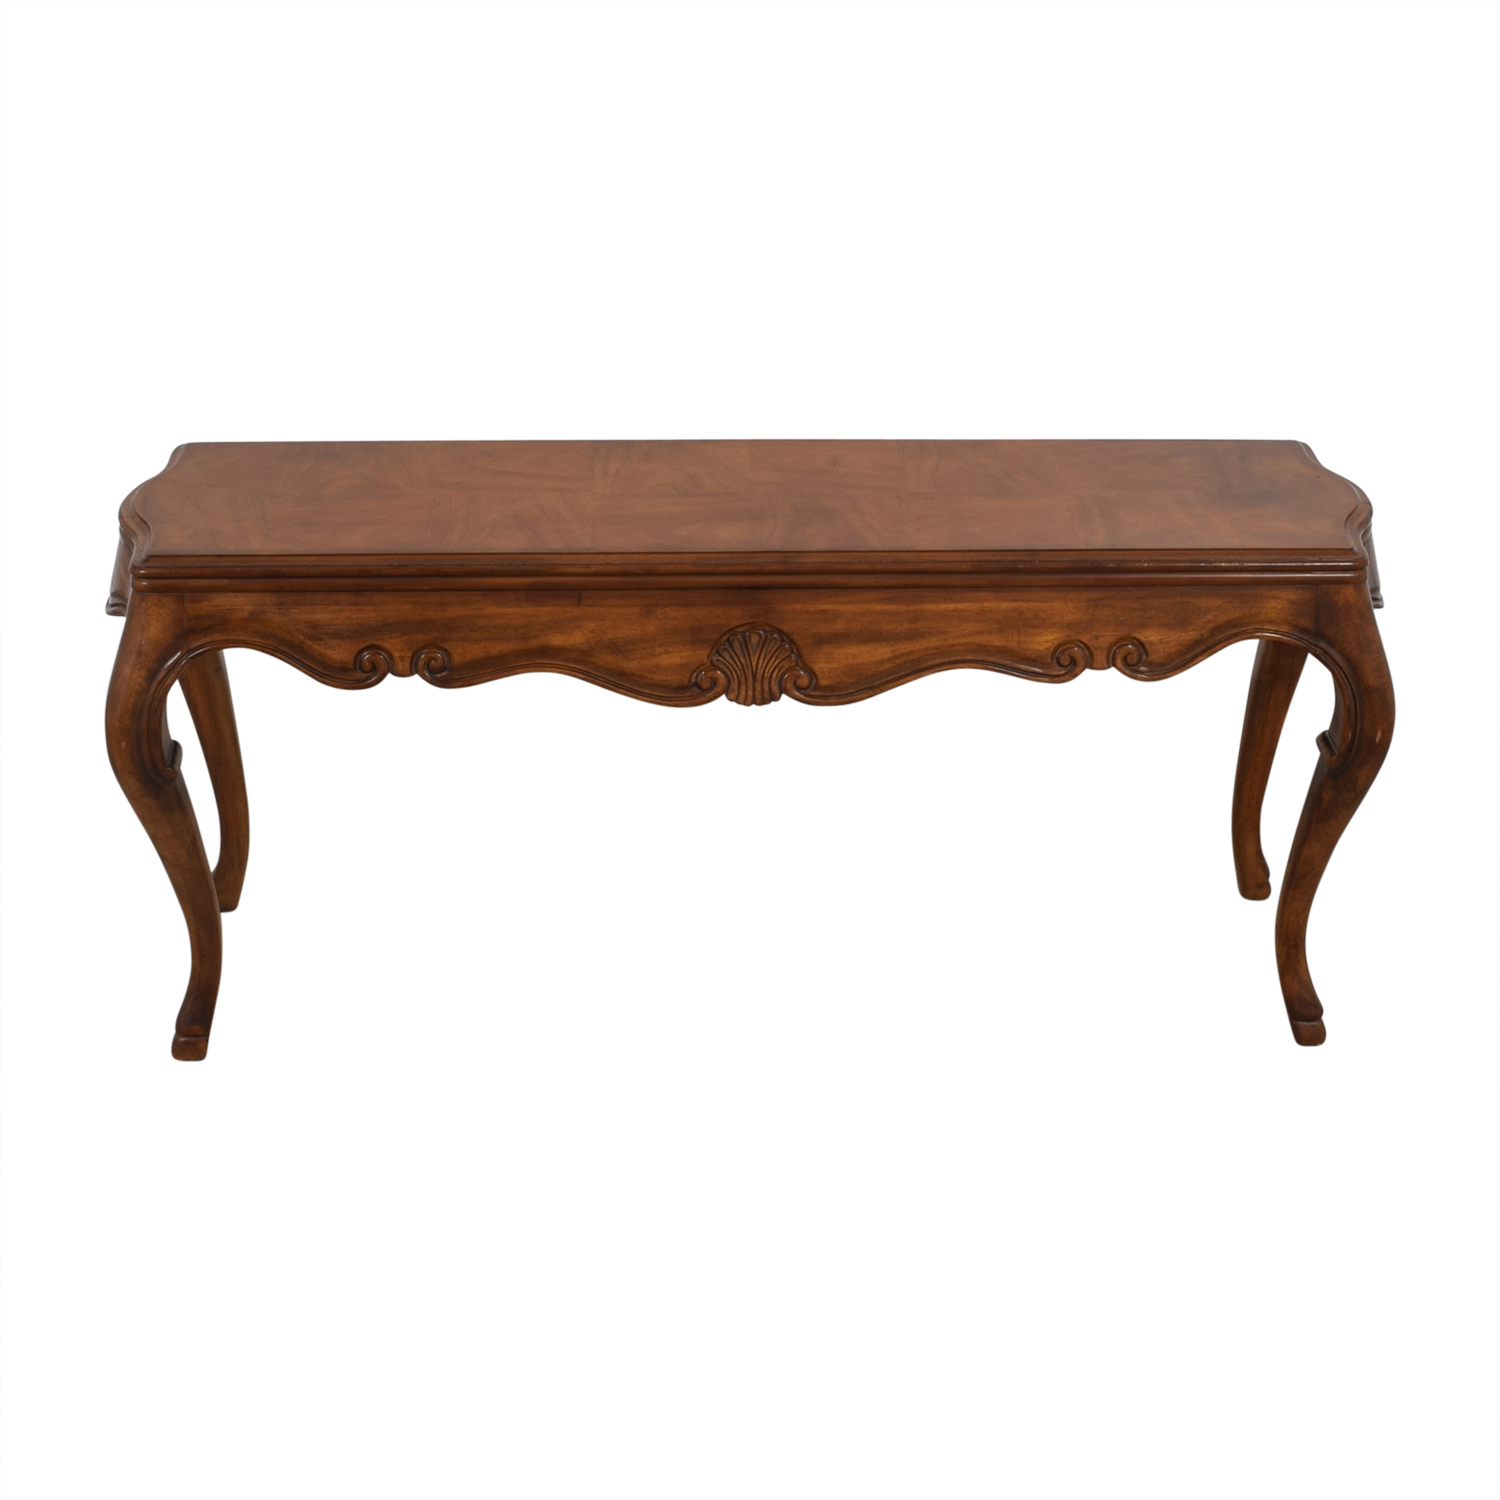 35% OFF Vintage Walnut Sofa Table Tables